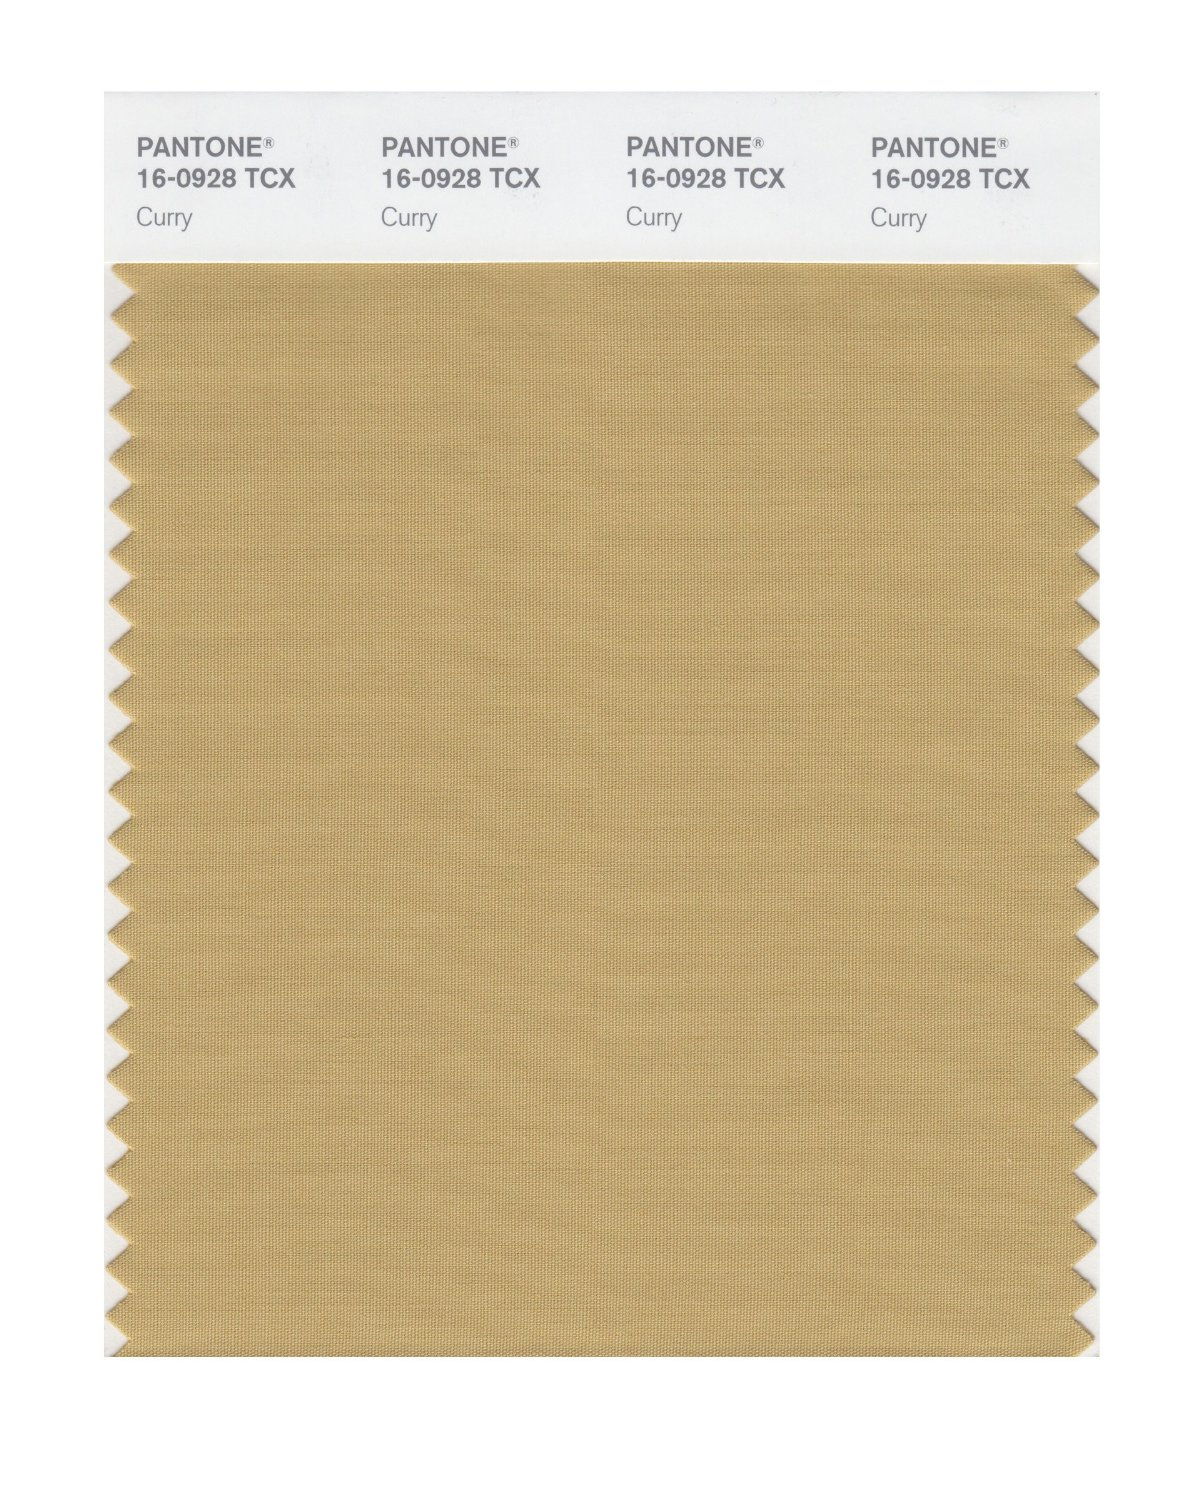 Pantone Smart Swatch 16-0928 Curry